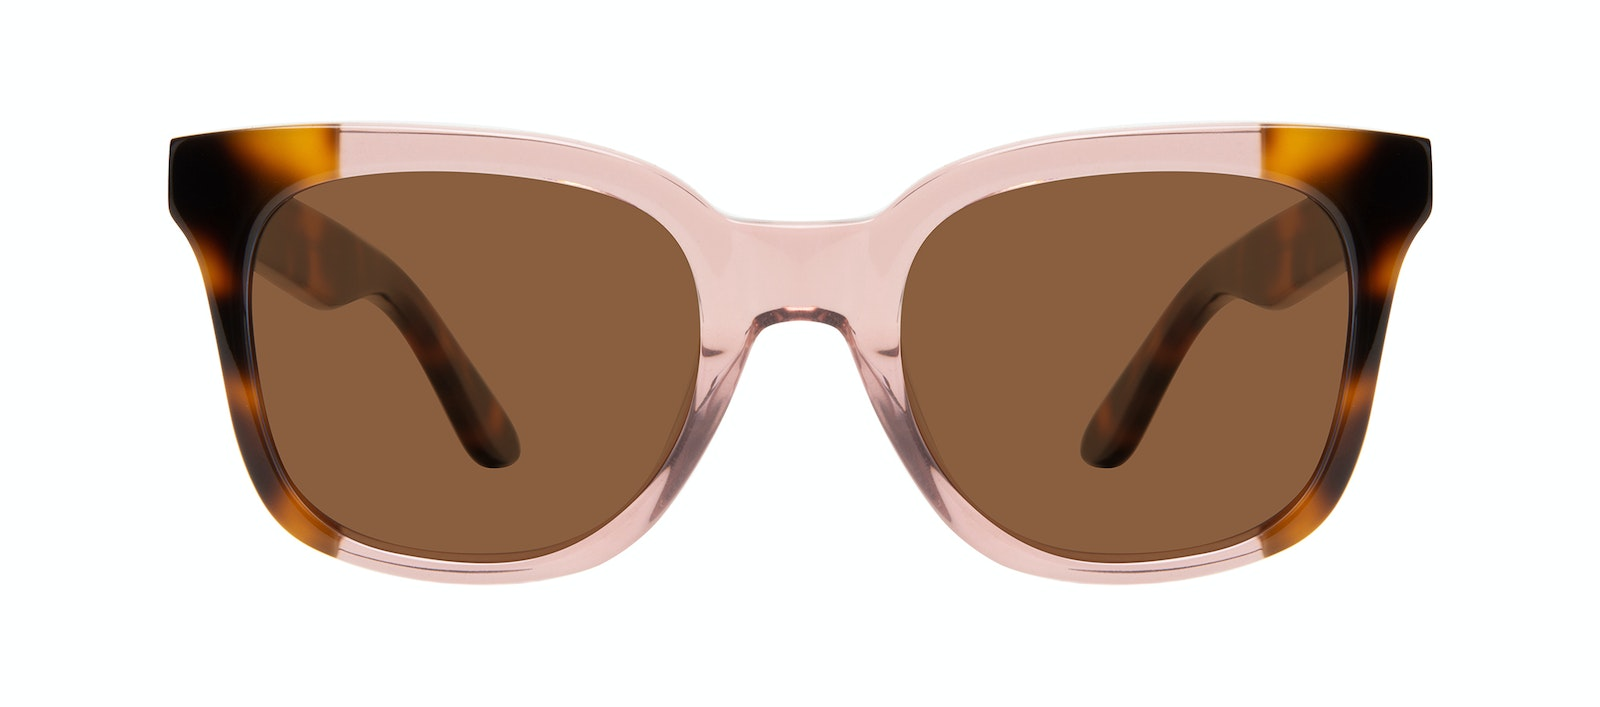 Affordable Fashion Glasses Square Sunglasses Women Mighty Rose Tort Front